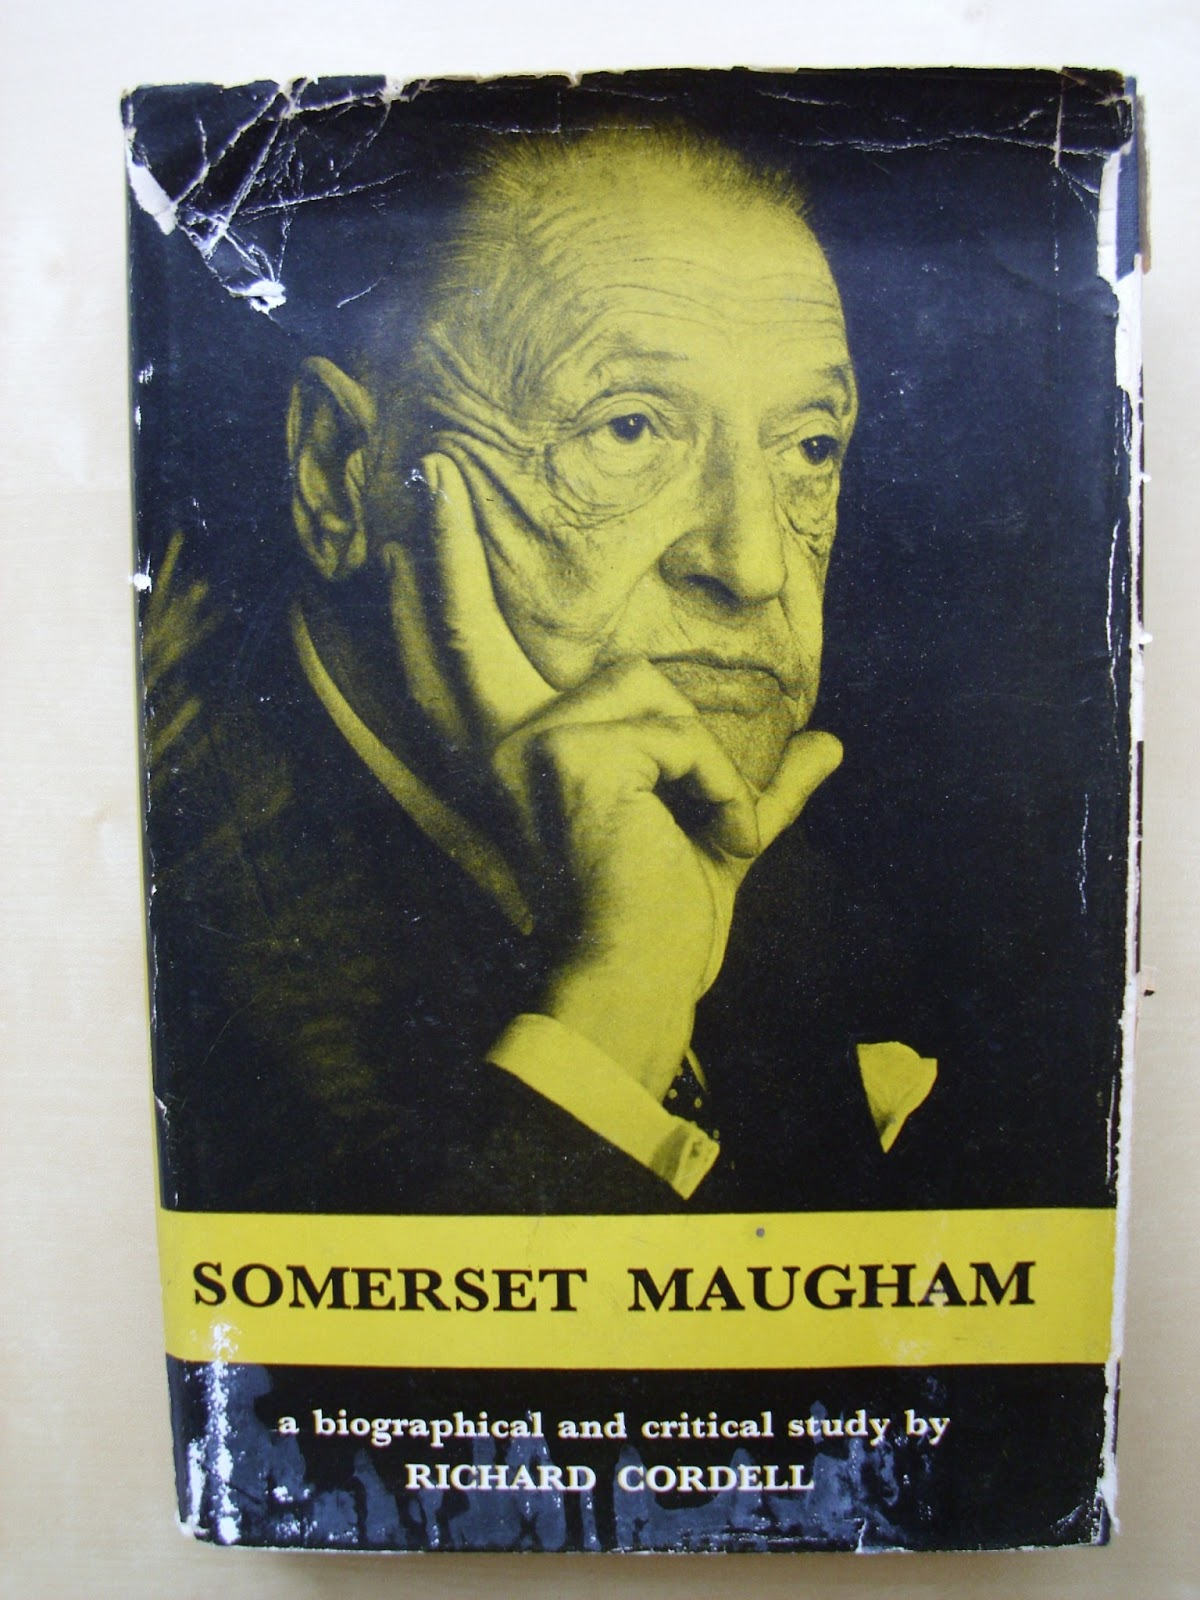 summary of the man with the scar written by somerset maugham The escape william somerset maugham i have always been convinced that if a woman once made up her mind to marry a man nothing but instant flight could save him.